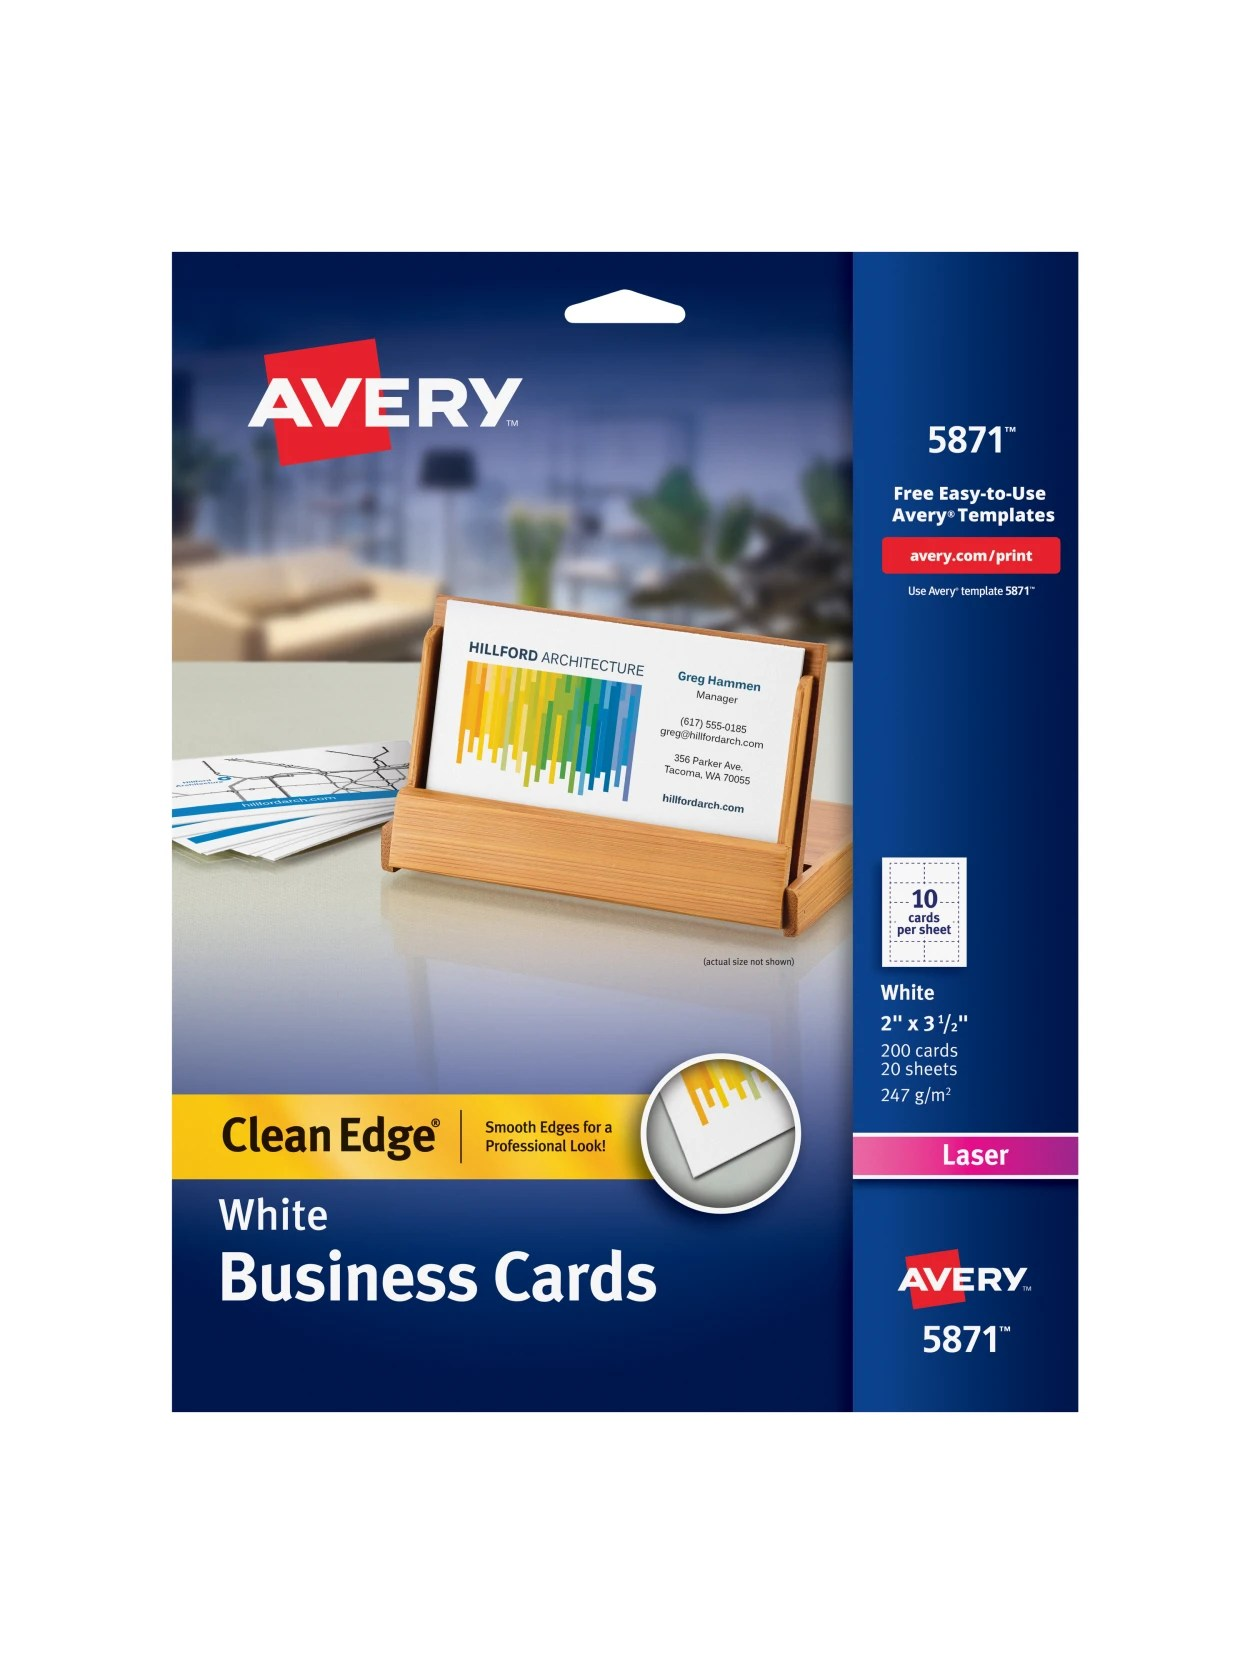 Office Depot Same Day Business Cards : office, depot, business, cards, Avery, Clean, Business, Cards, Office, Depot